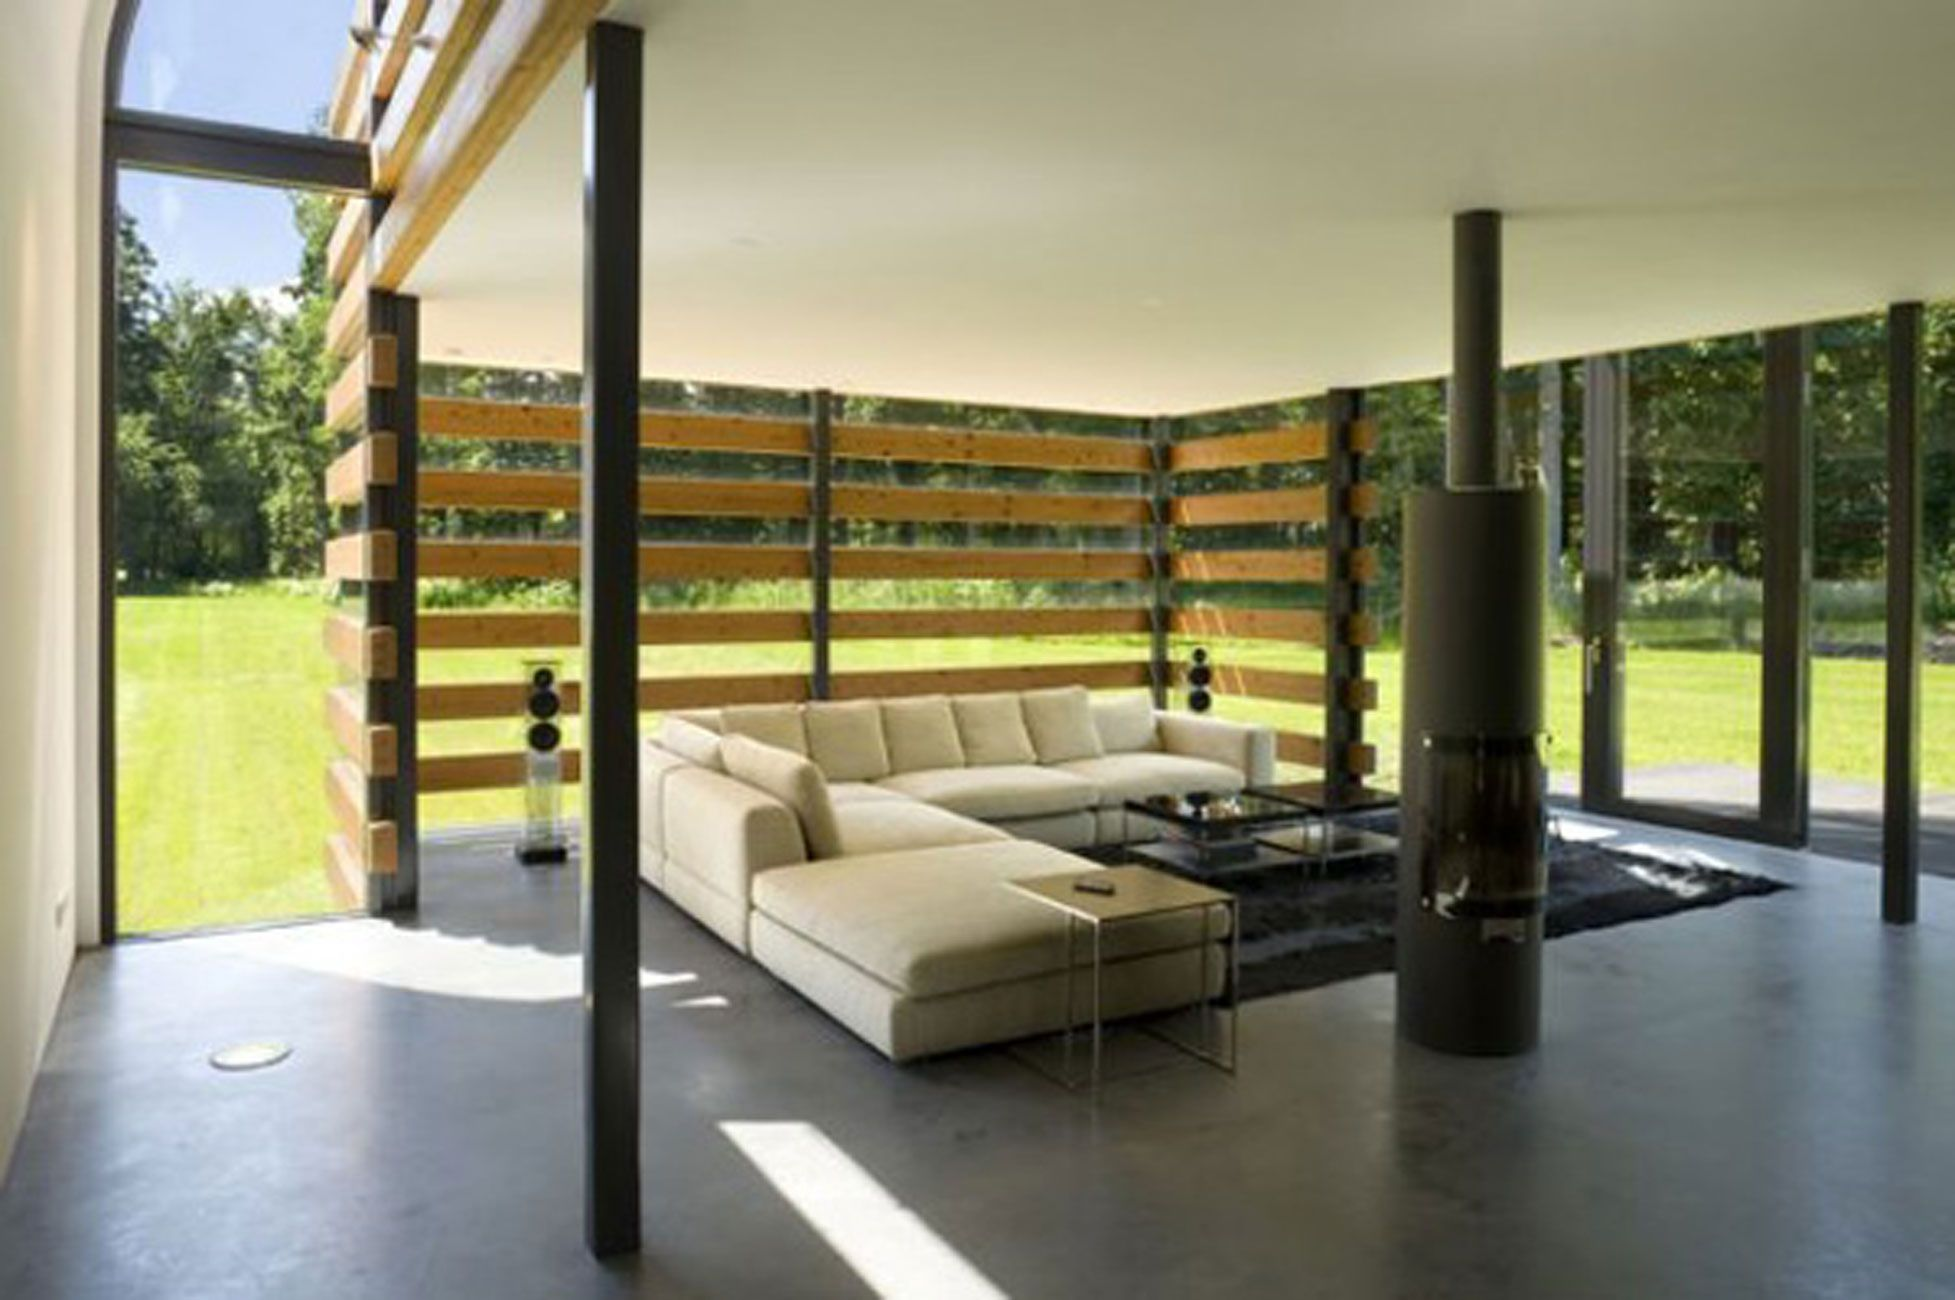 love wood on sides for privacy and wind break metal barn designs